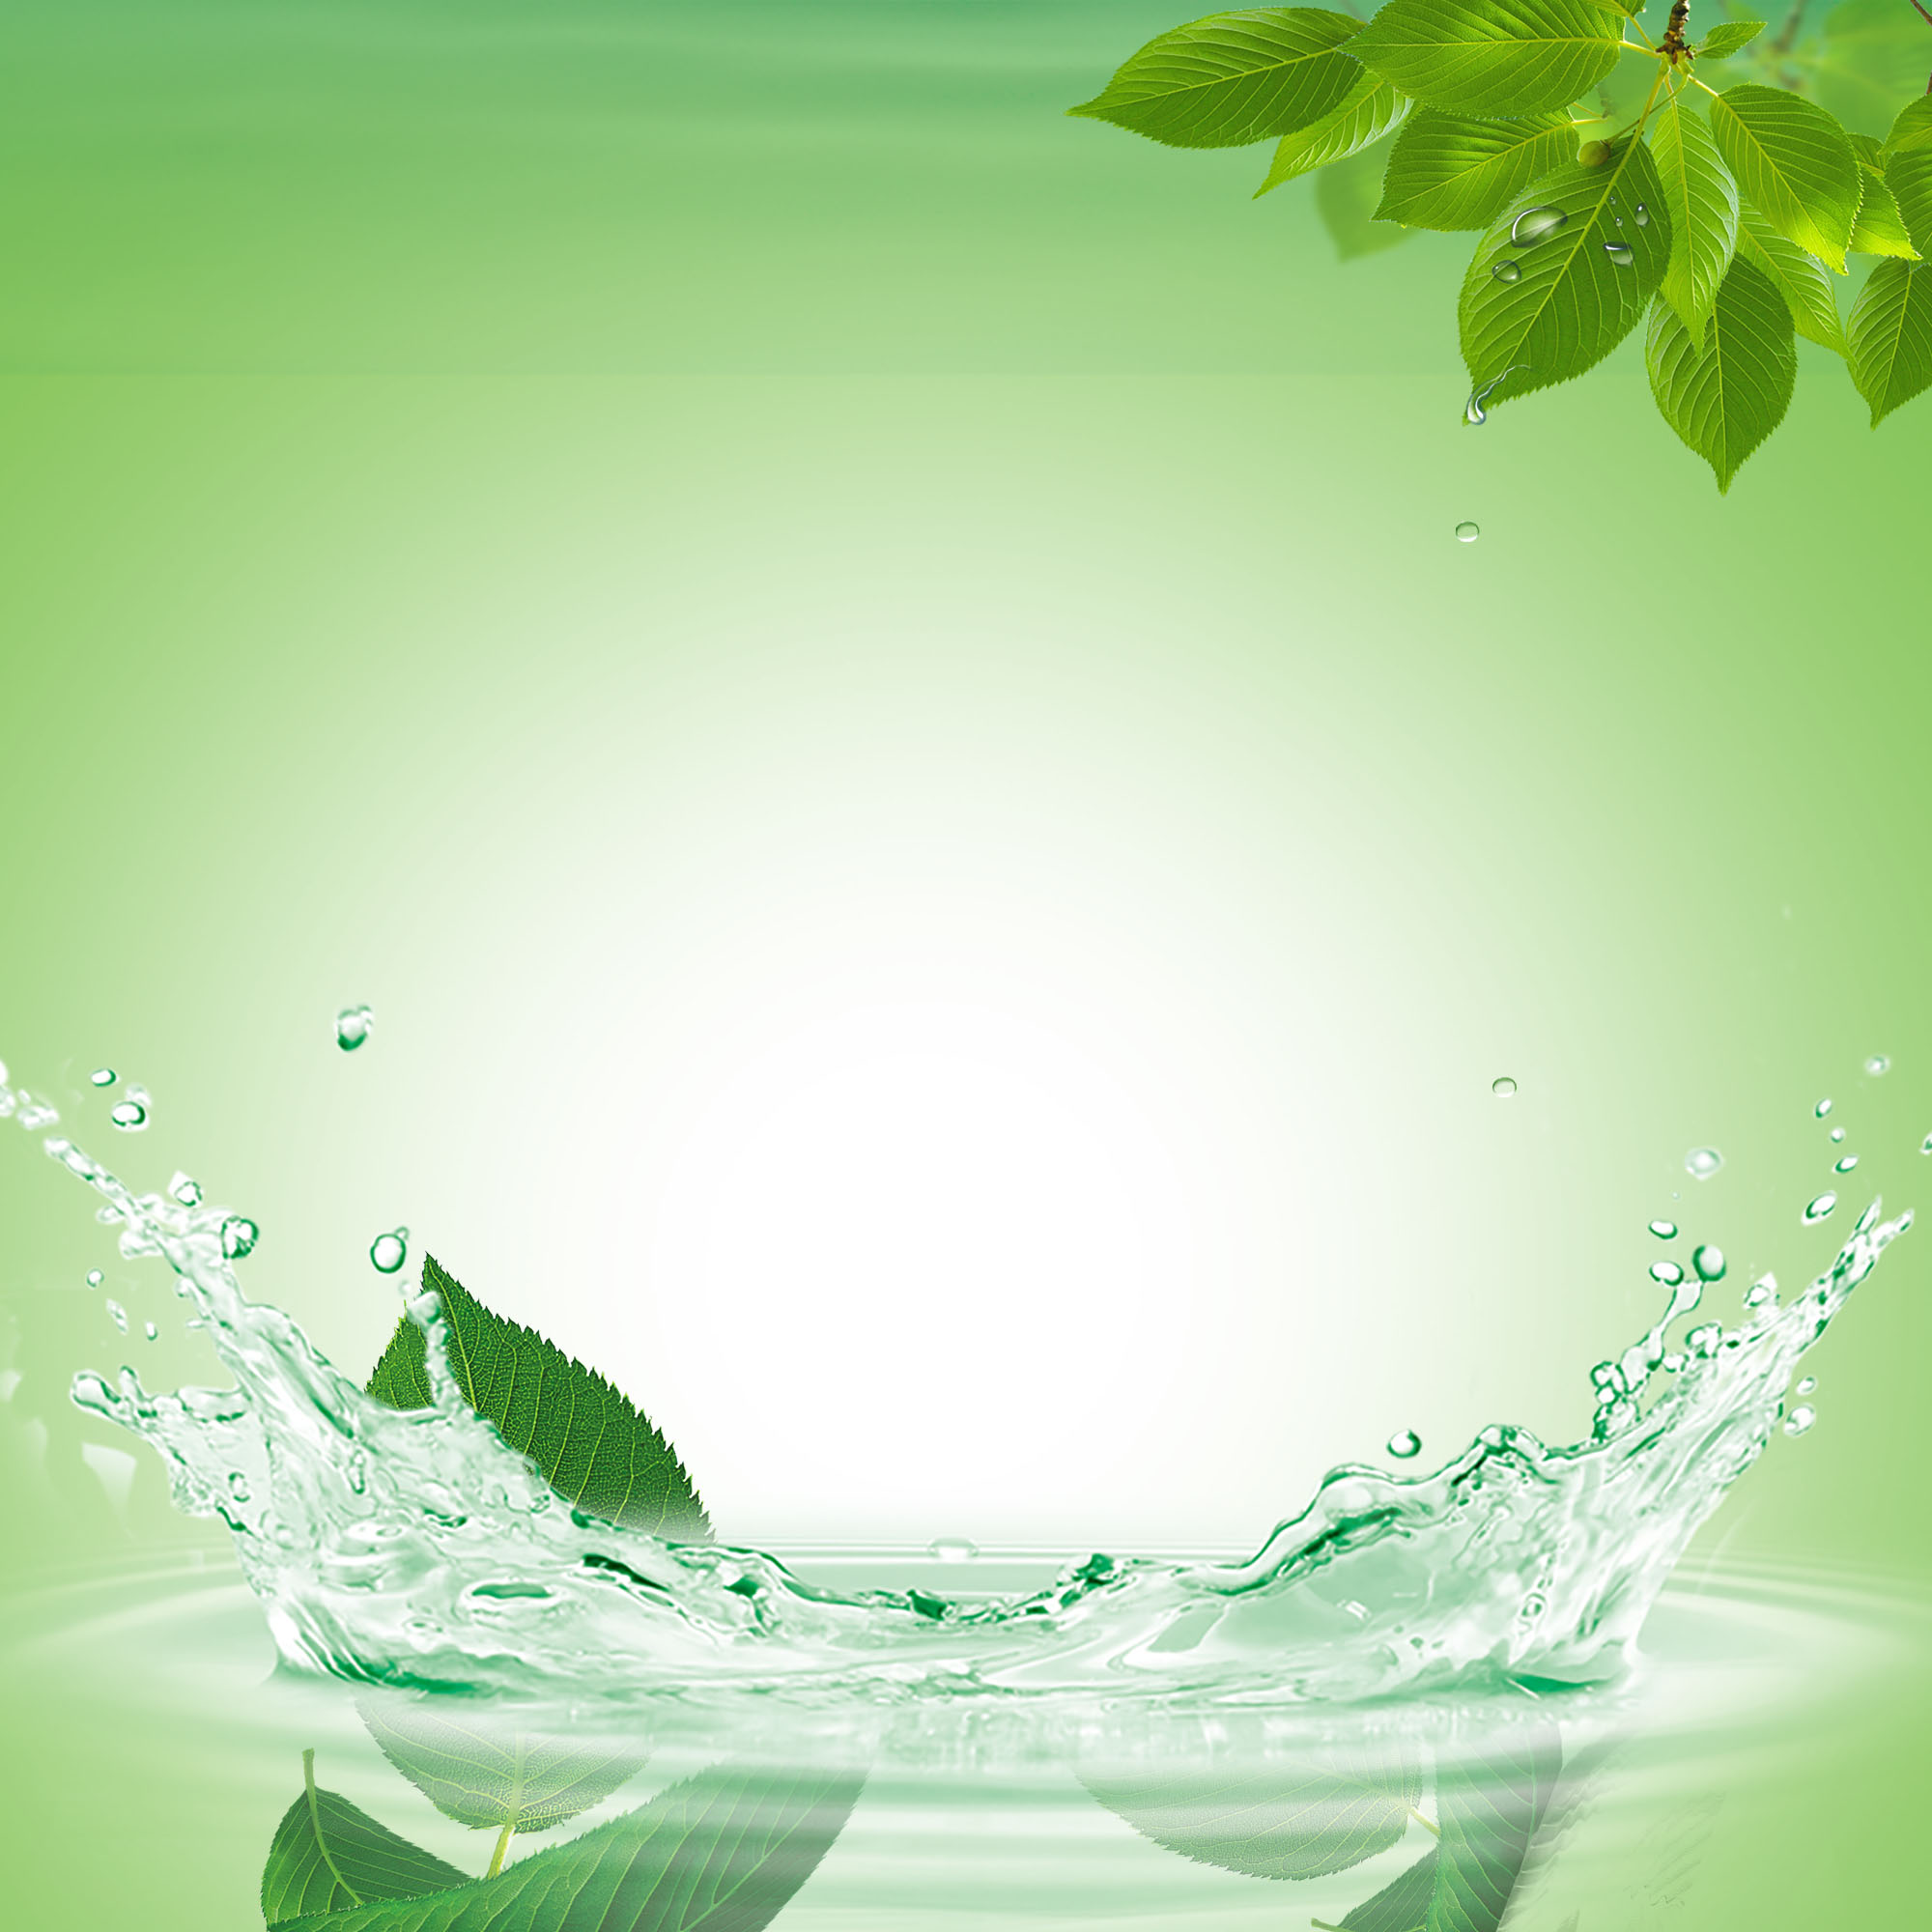 Fall Of The Leafe Wallpaper Fresh Water Drops Splash Poster Green Background Green